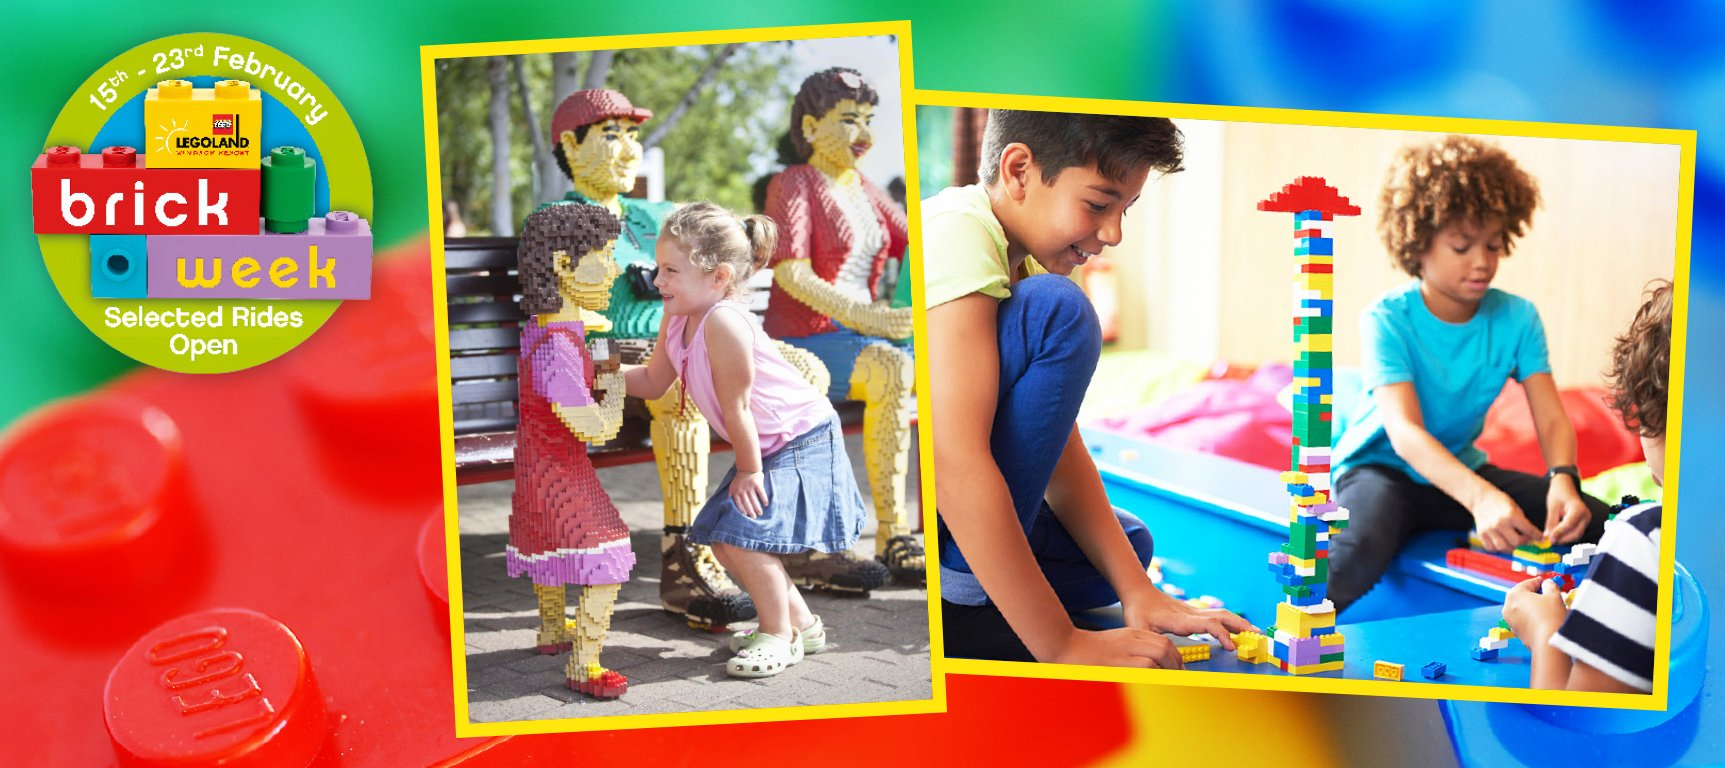 Win Tickets to Brick Week at LEGOLAND® Windsor Resort